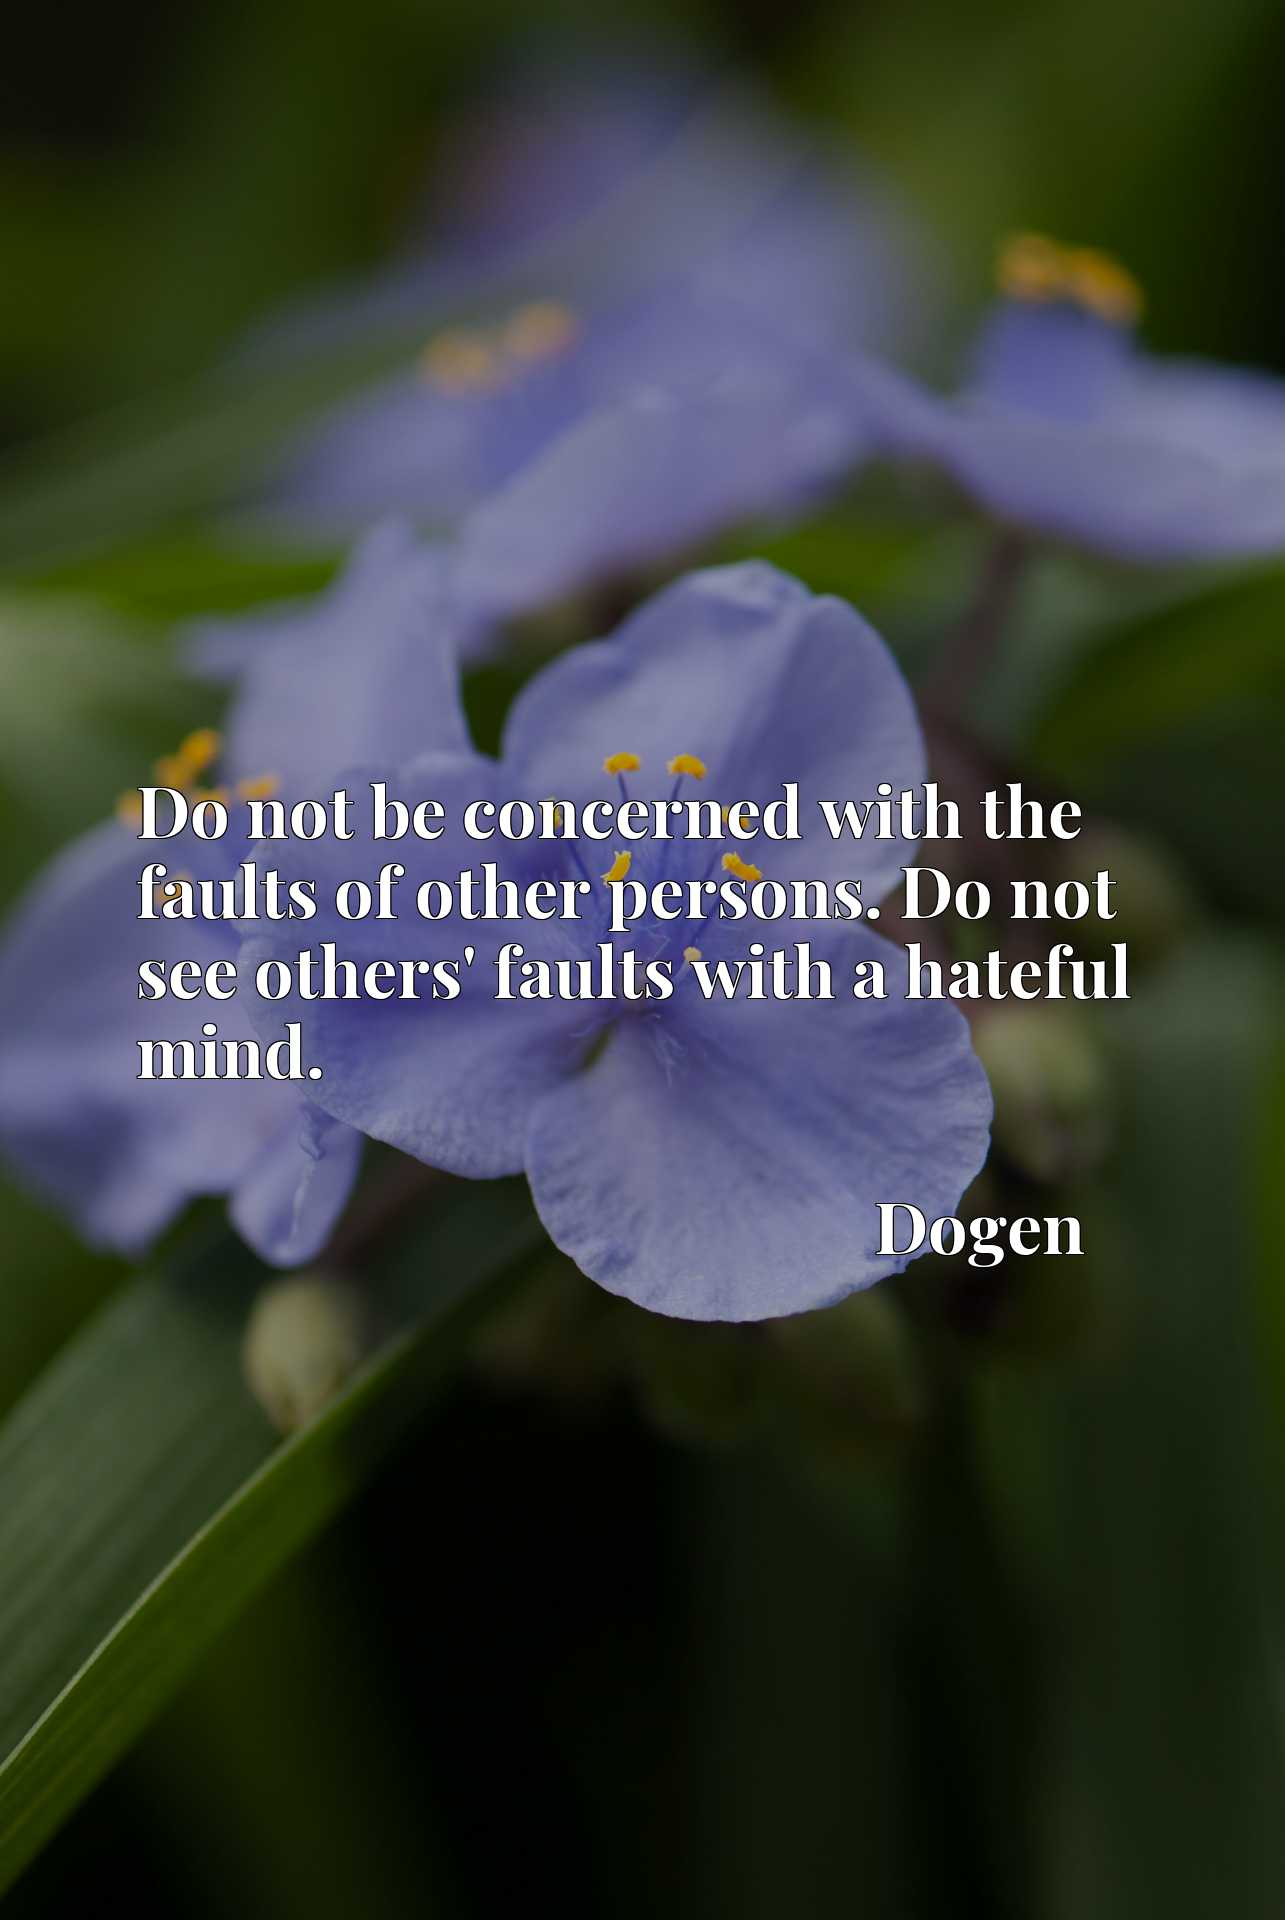 Do not be concerned with the faults of other persons. Do not see others' faults with a hateful mind.